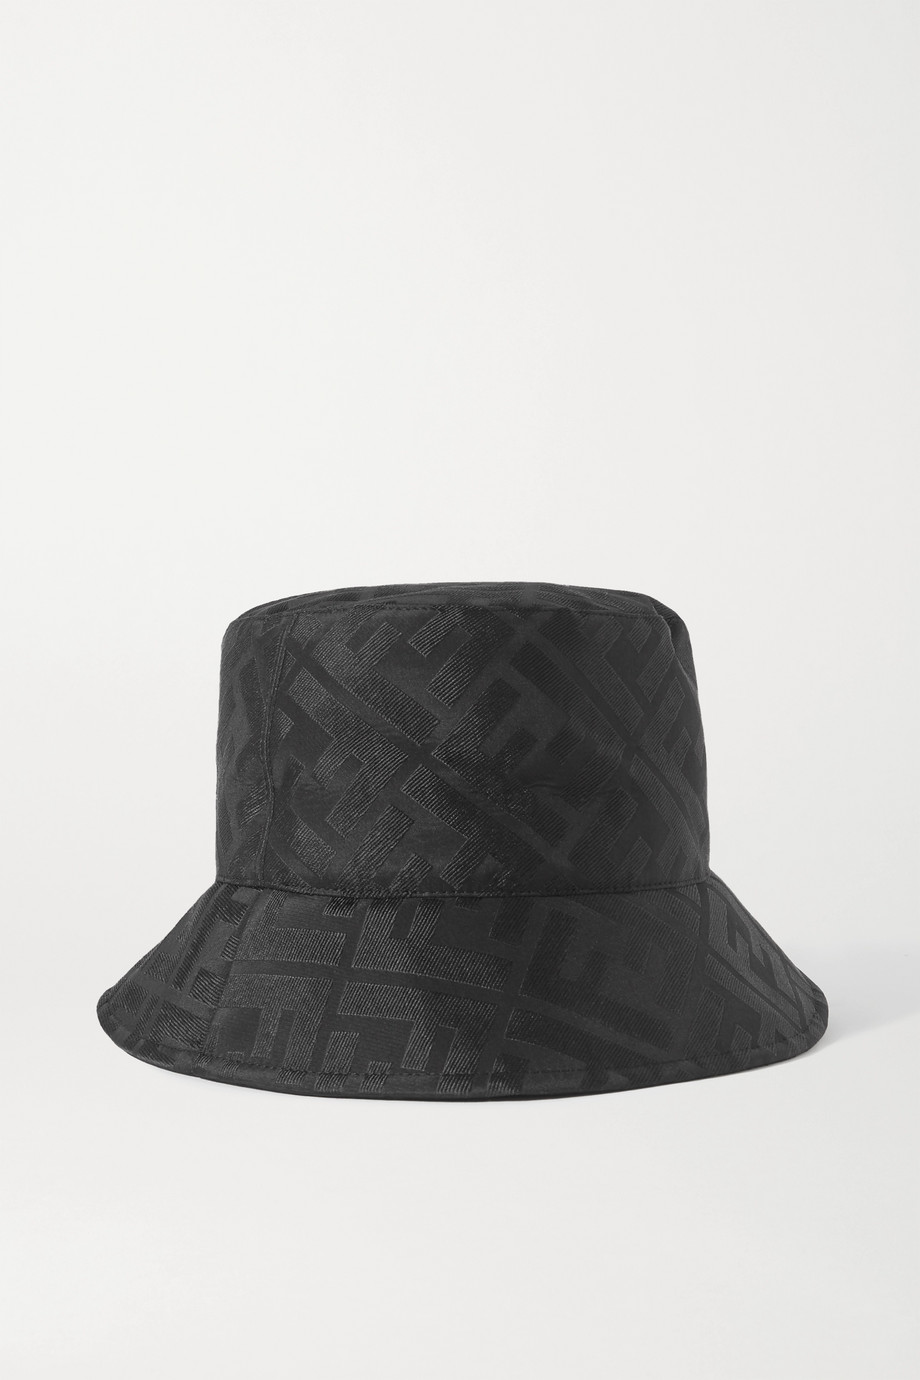 Fendi Silk-jacquard bucket hat